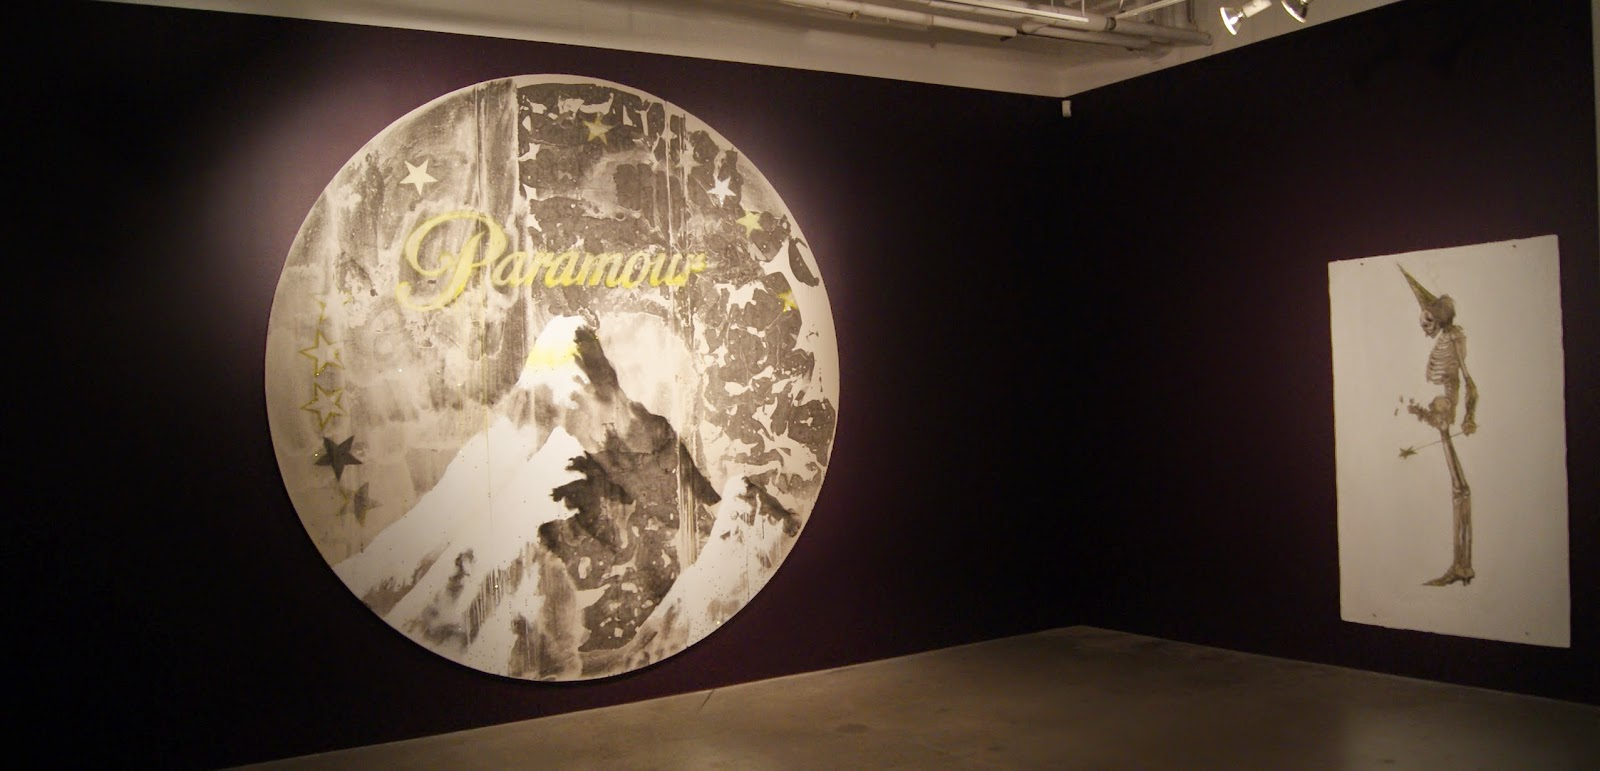 Par Amour/ Paramour Exhibit at MOCCA: Paramour, 2012, and Morte Fae, 2012 by Jean-Luc Verna, culture, Toronto, art, artmatters, painting, drawings, photographs, world pride, Canada, The purplescarf, Melanie_Ps, Museum, Contemporary, Queer, AIDS,